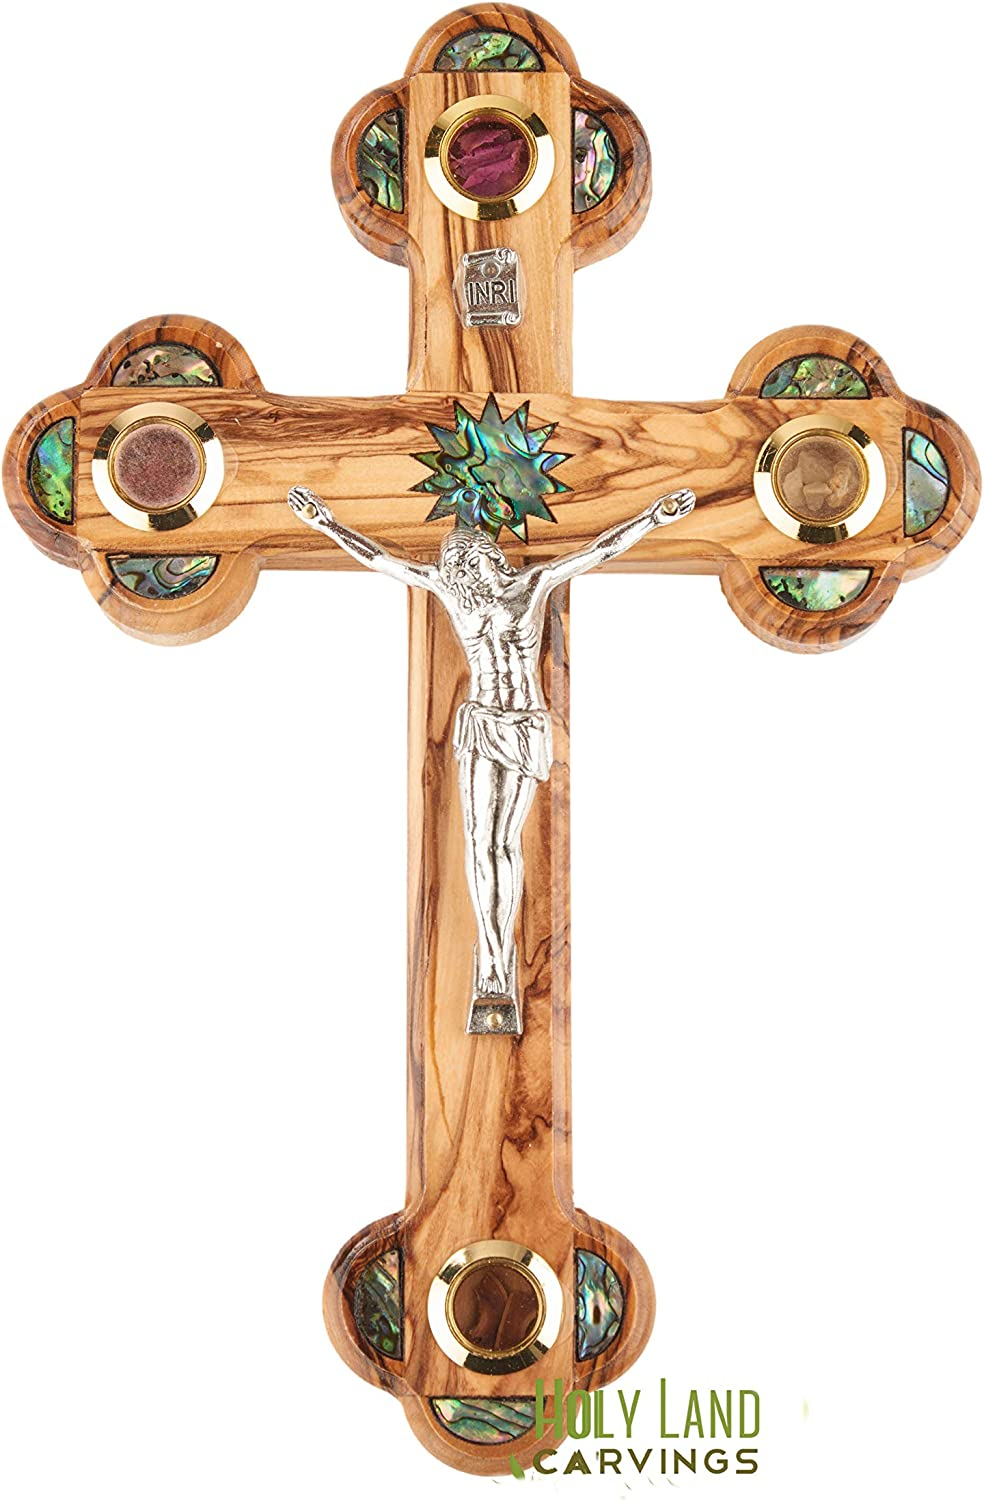 11 Inch Wall Catholic Crucifix Holy Ranking TOP14 for sold out Land Olive Cross Wood W